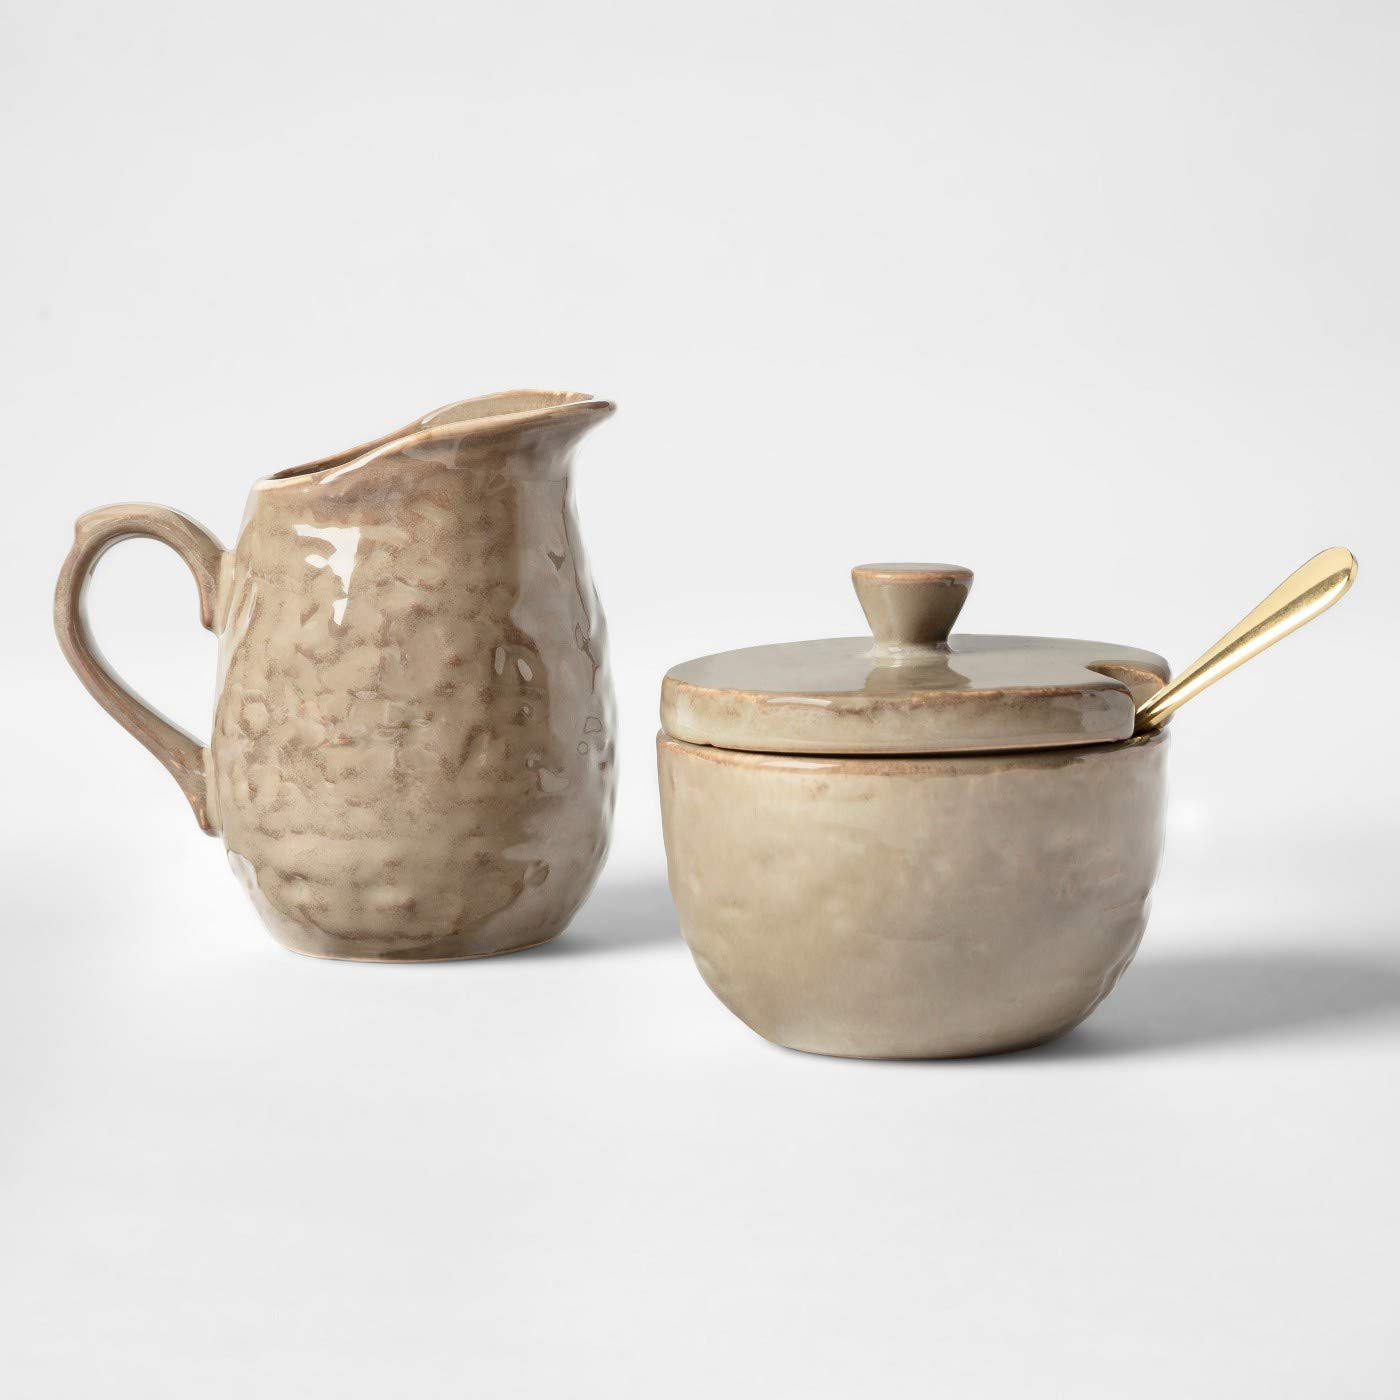 Stoneware Coffee Creamer and Sugar Bowl with Metal Spoon Bundle | Cravings by Chrissy Teigen Kitchenware by Gratitude99